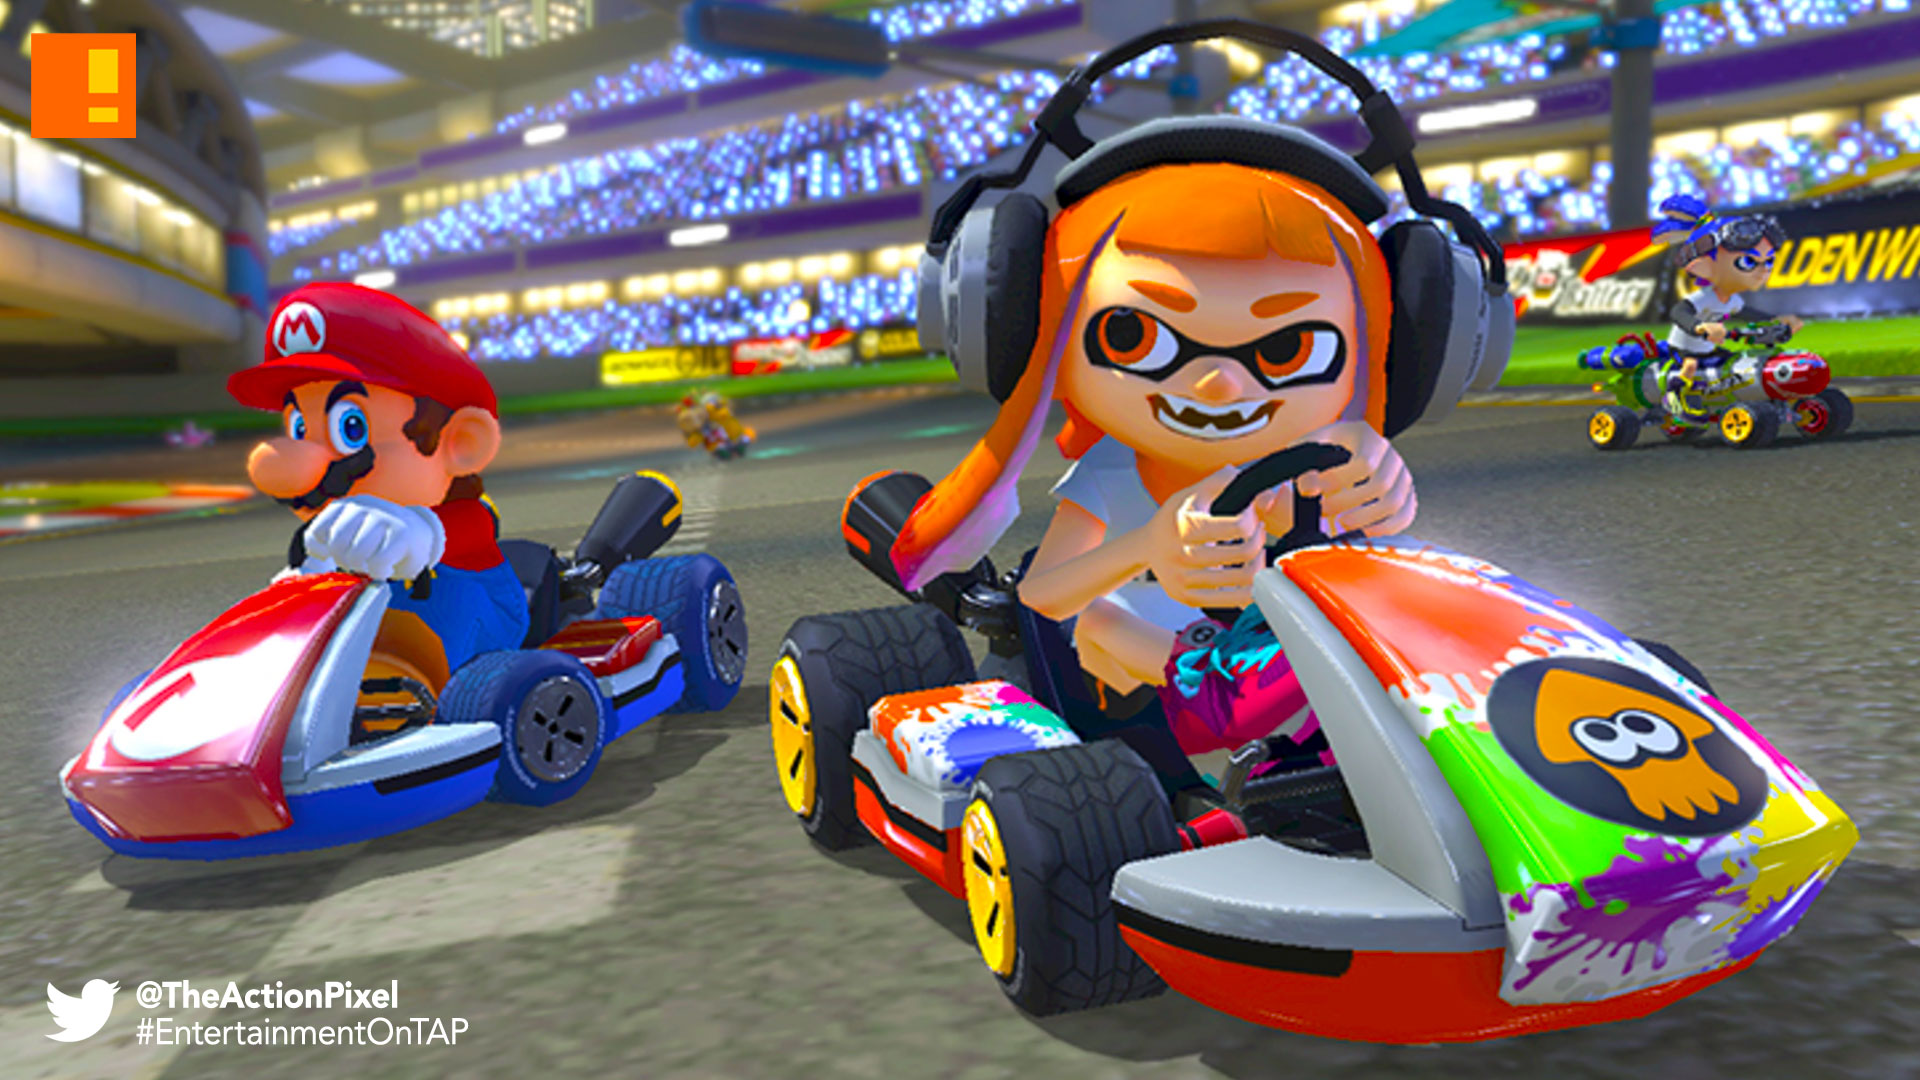 mario kart 8 deluxe, mario kart, mario kart 8, nintendo, nintendo switch, mario, the action pixel, entertainment on tap, trailer,